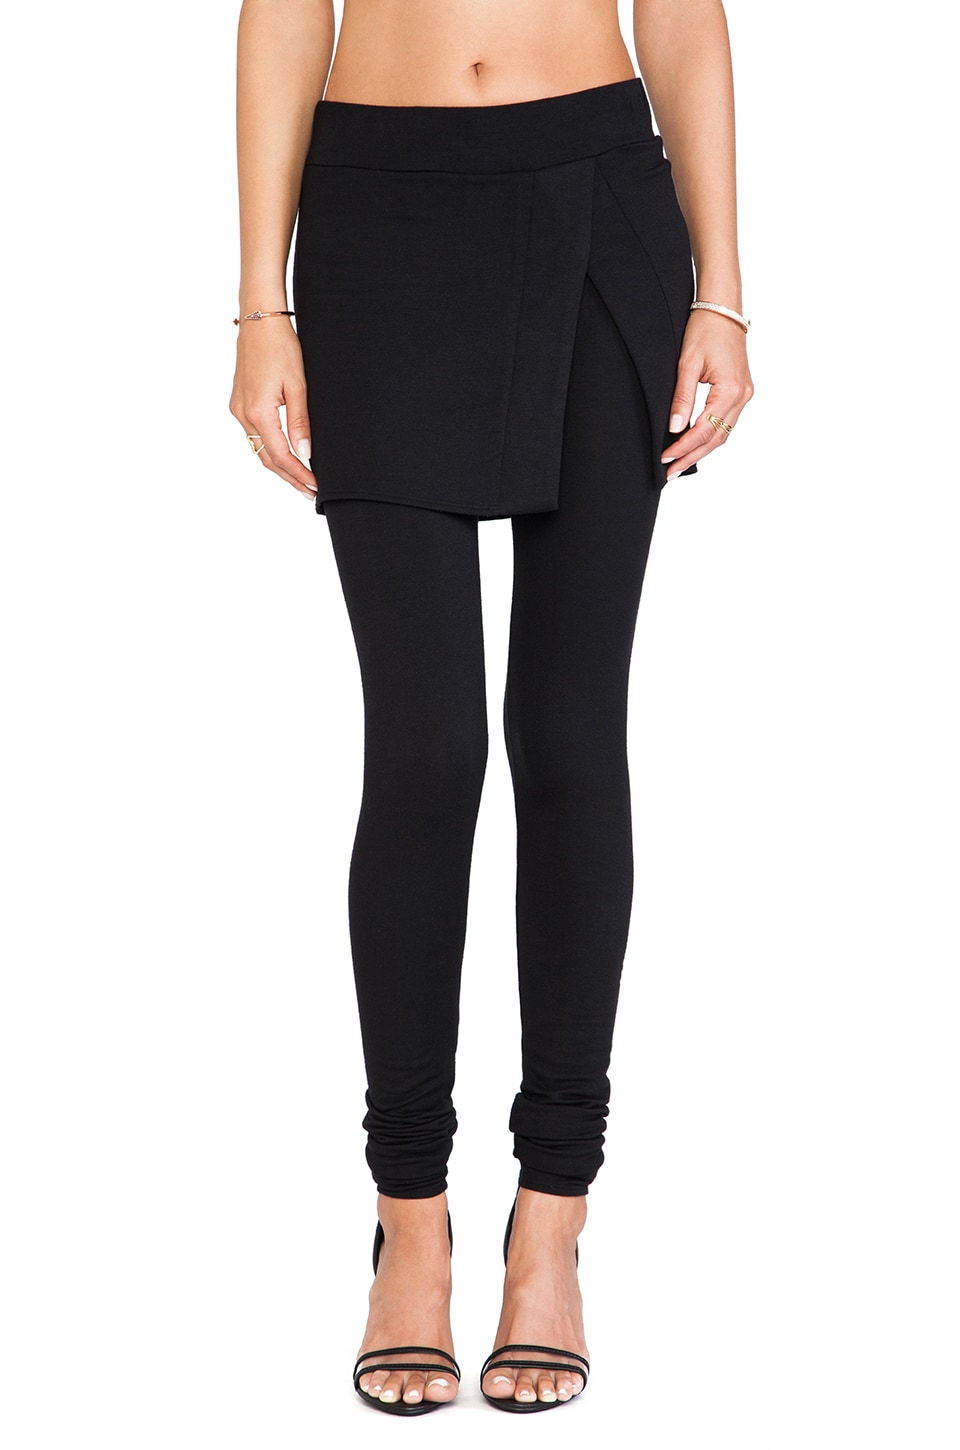 Riller & Fount Brigitte Long Legging in Black